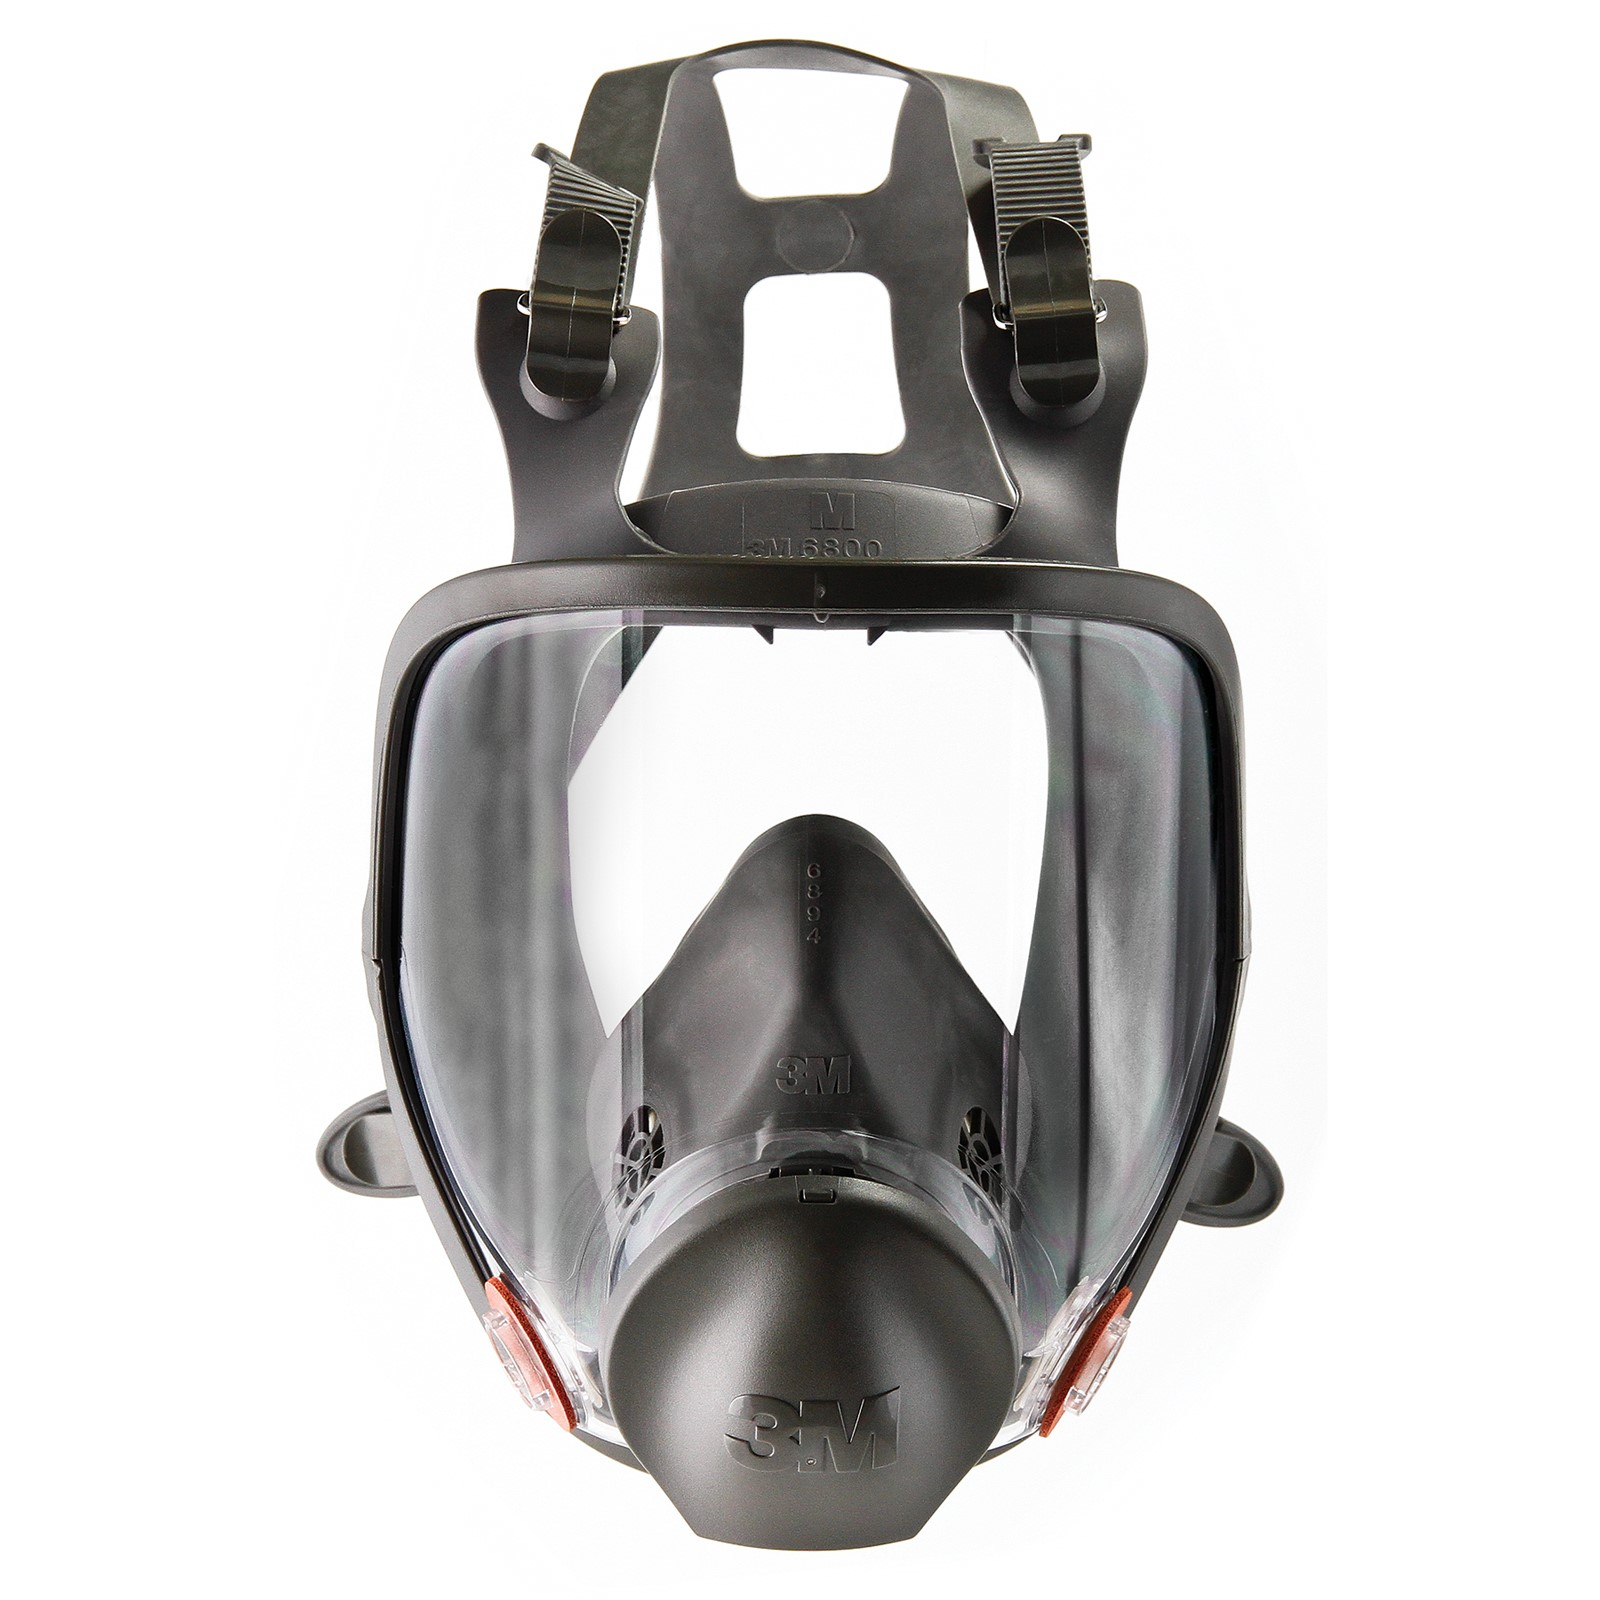 3M 6000 Series Full Facepiece Respirator Only